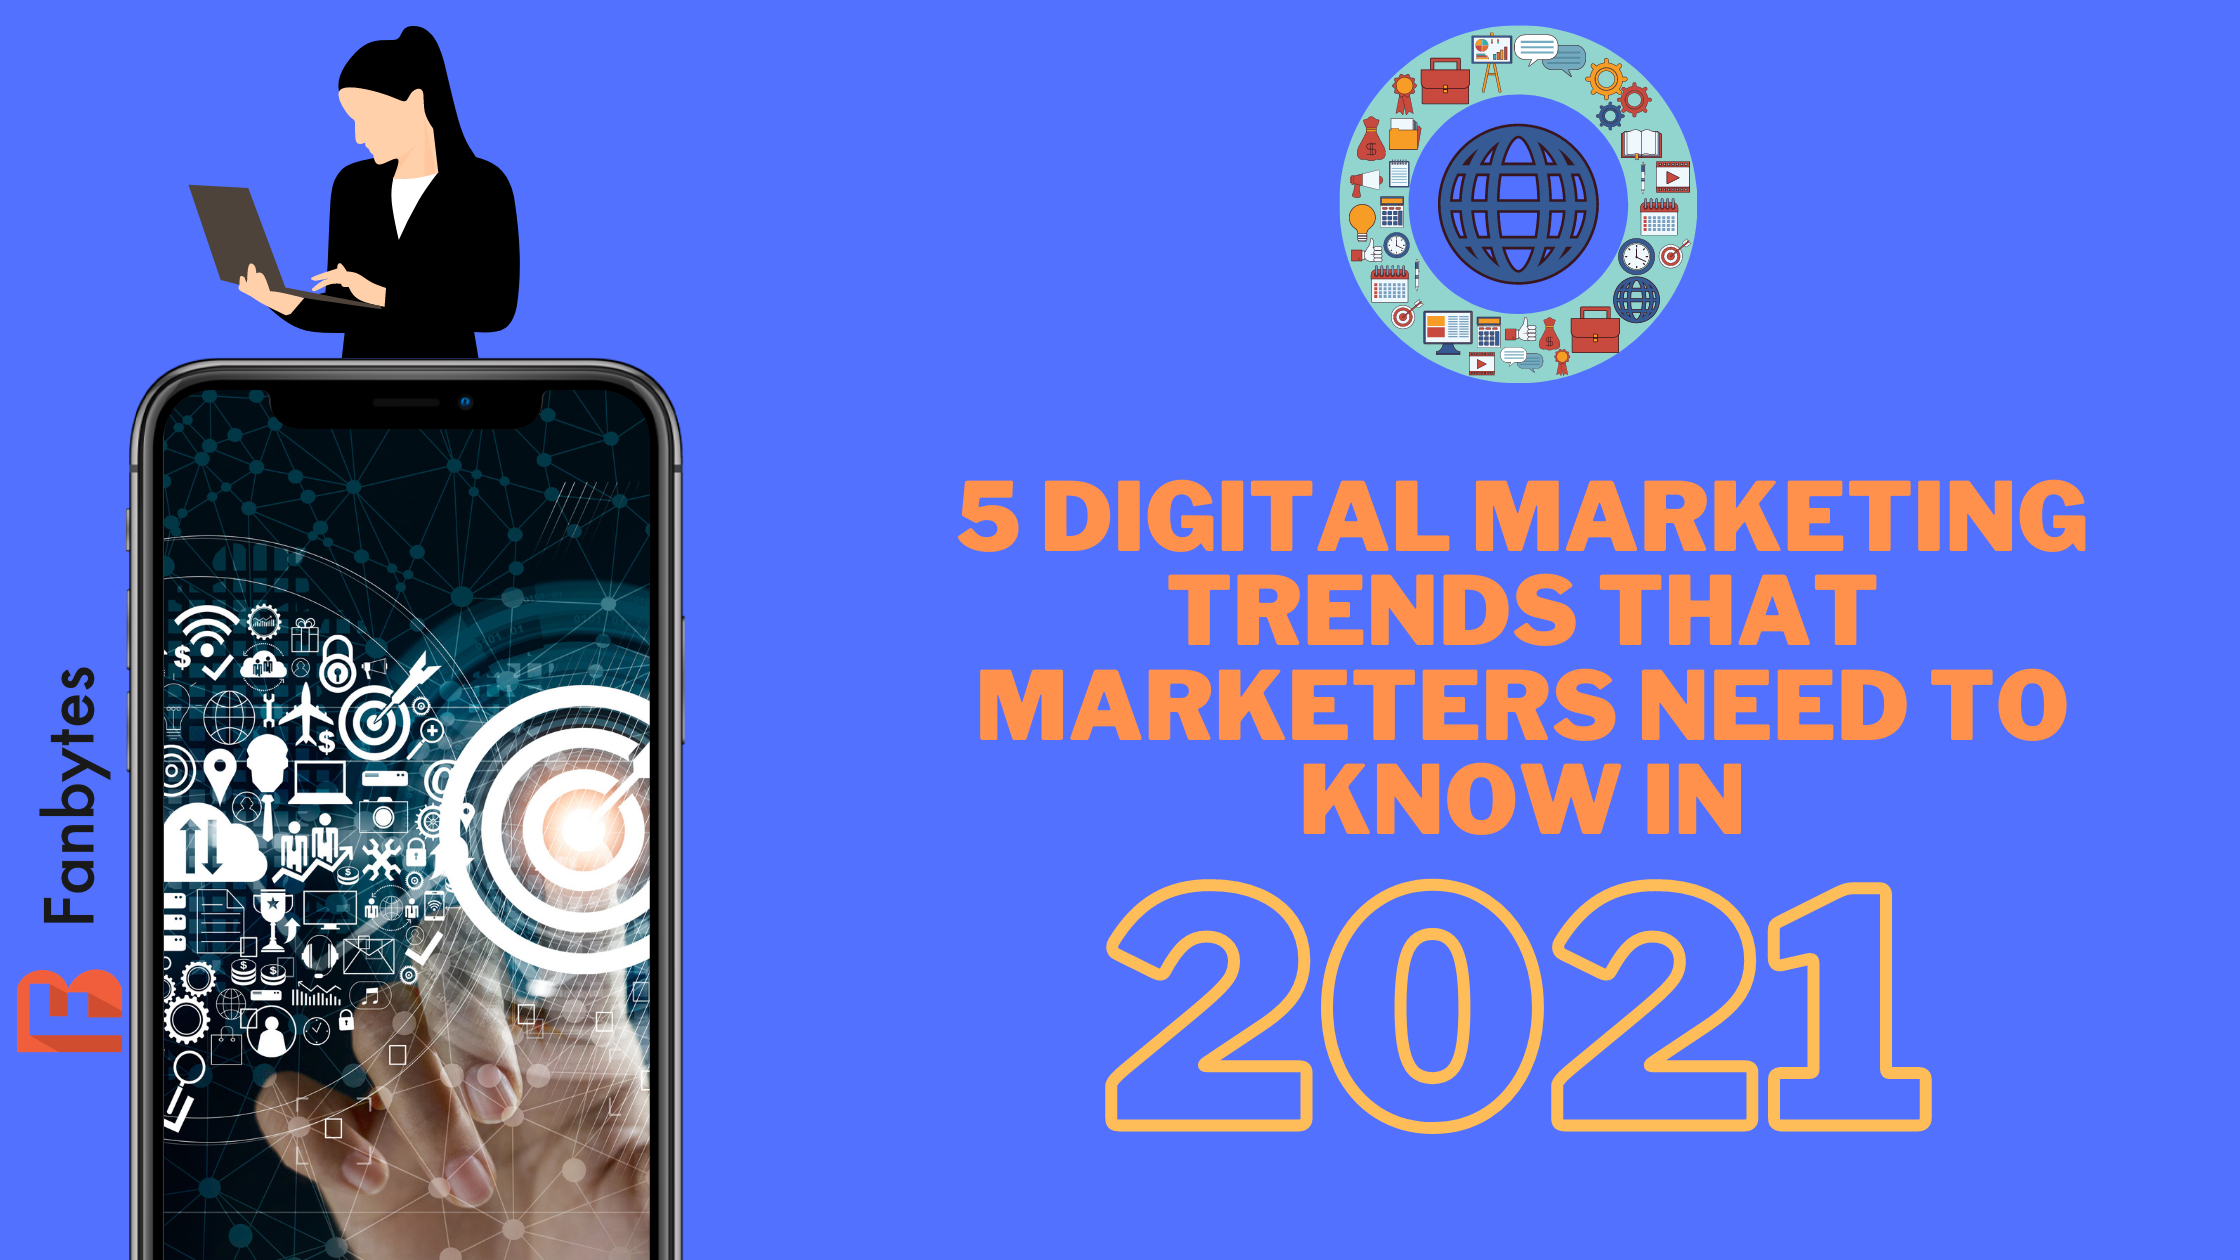 5 Digital Marketing Trends Marketers Need To Know In 2021